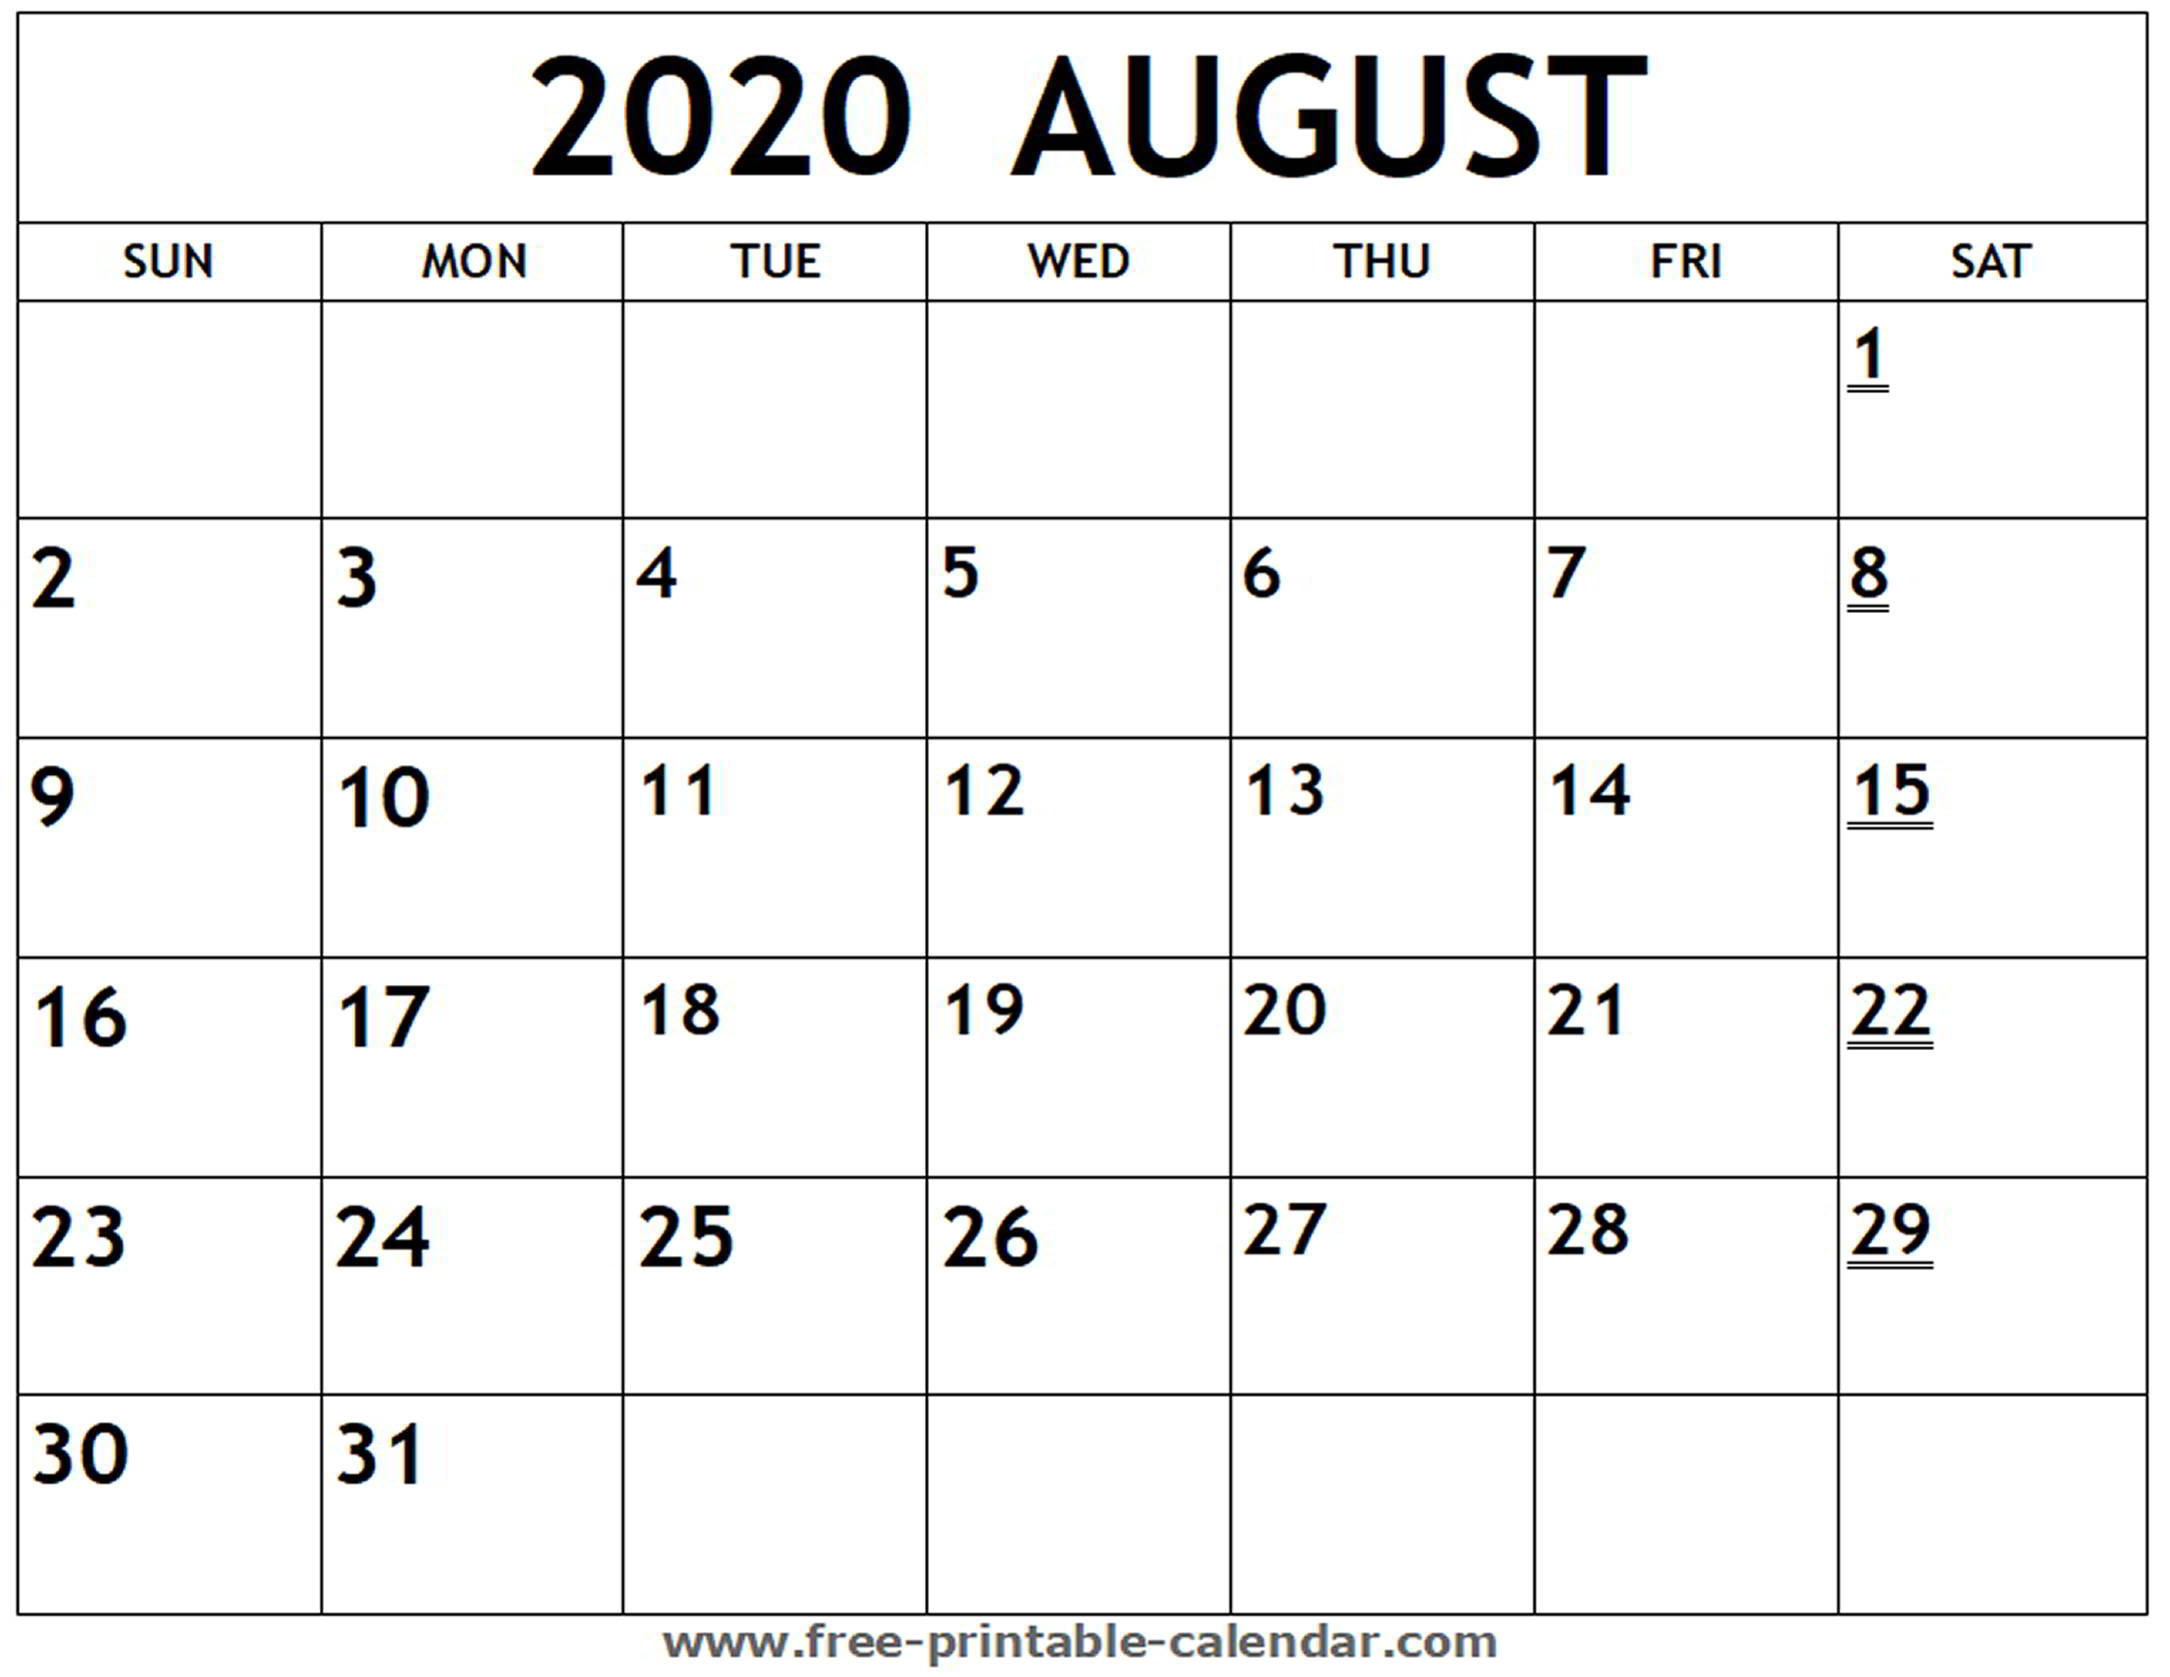 Printable 2020 August Calendar - Free-Printable-Calendar with regard to Free Fill In Calendars 2020